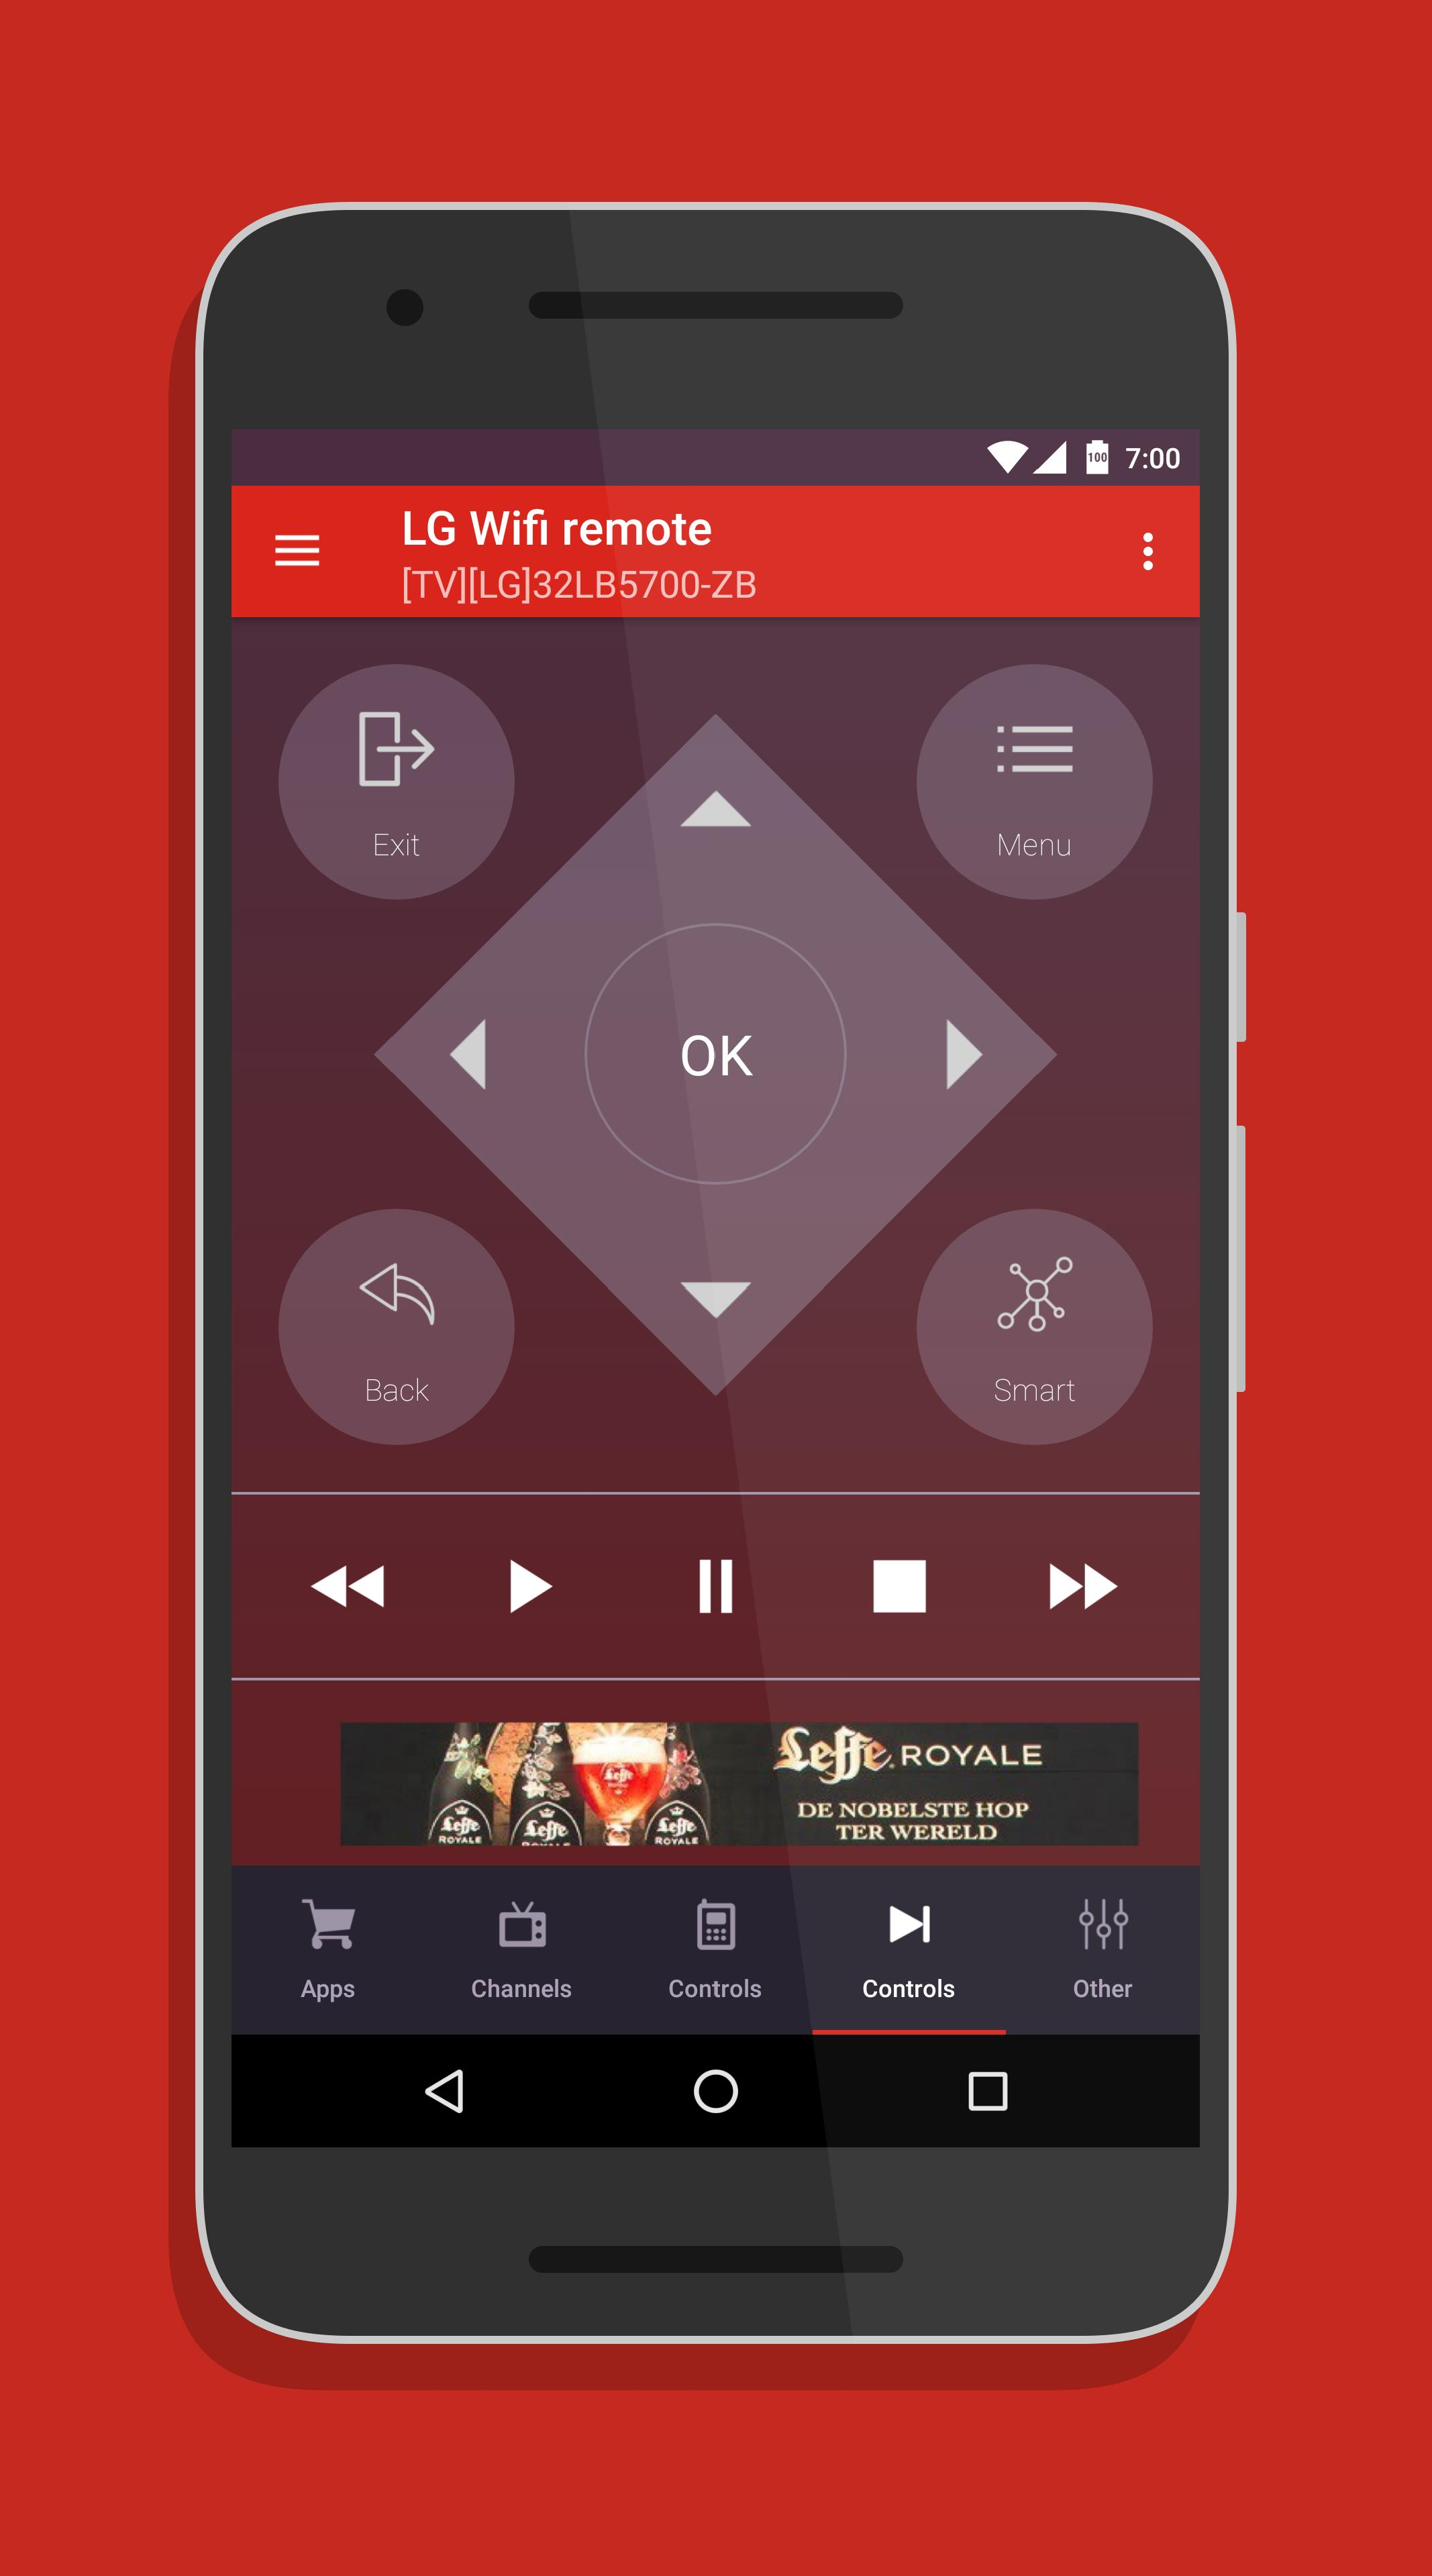 Smart TV Remote for LG SmartTV for Android - APK Download